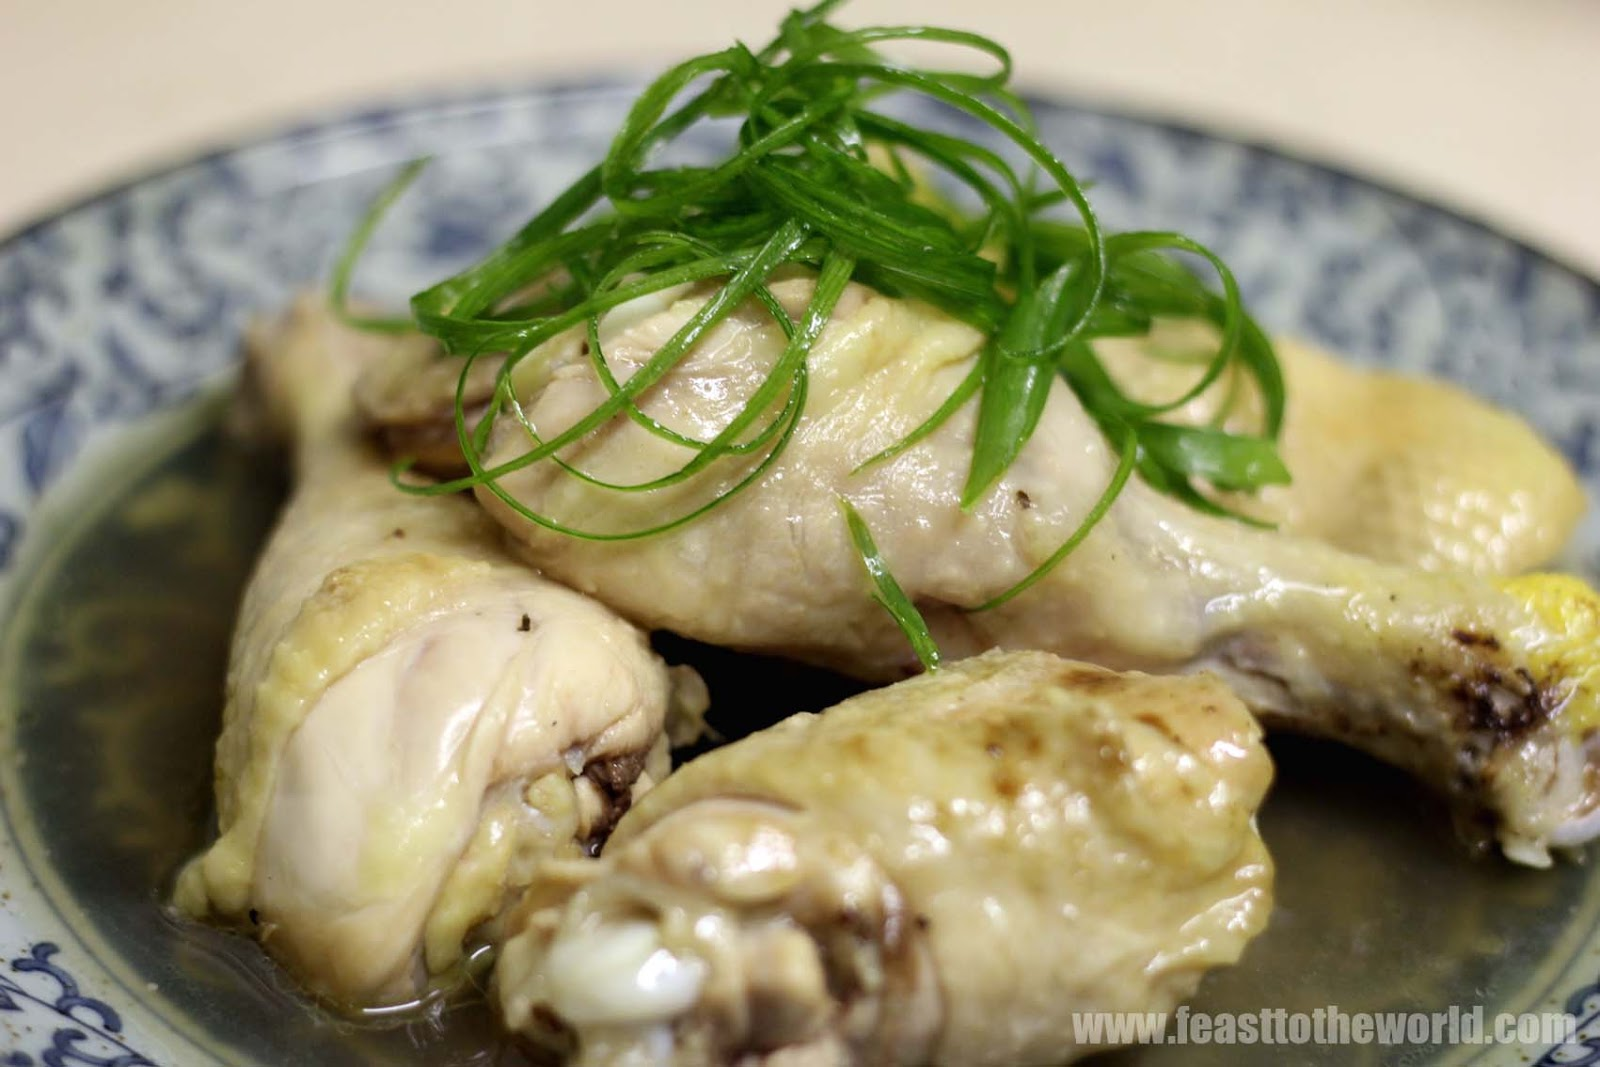 FEAST to the world: Boozy Chicks - Drunken Chicken 醉鸡